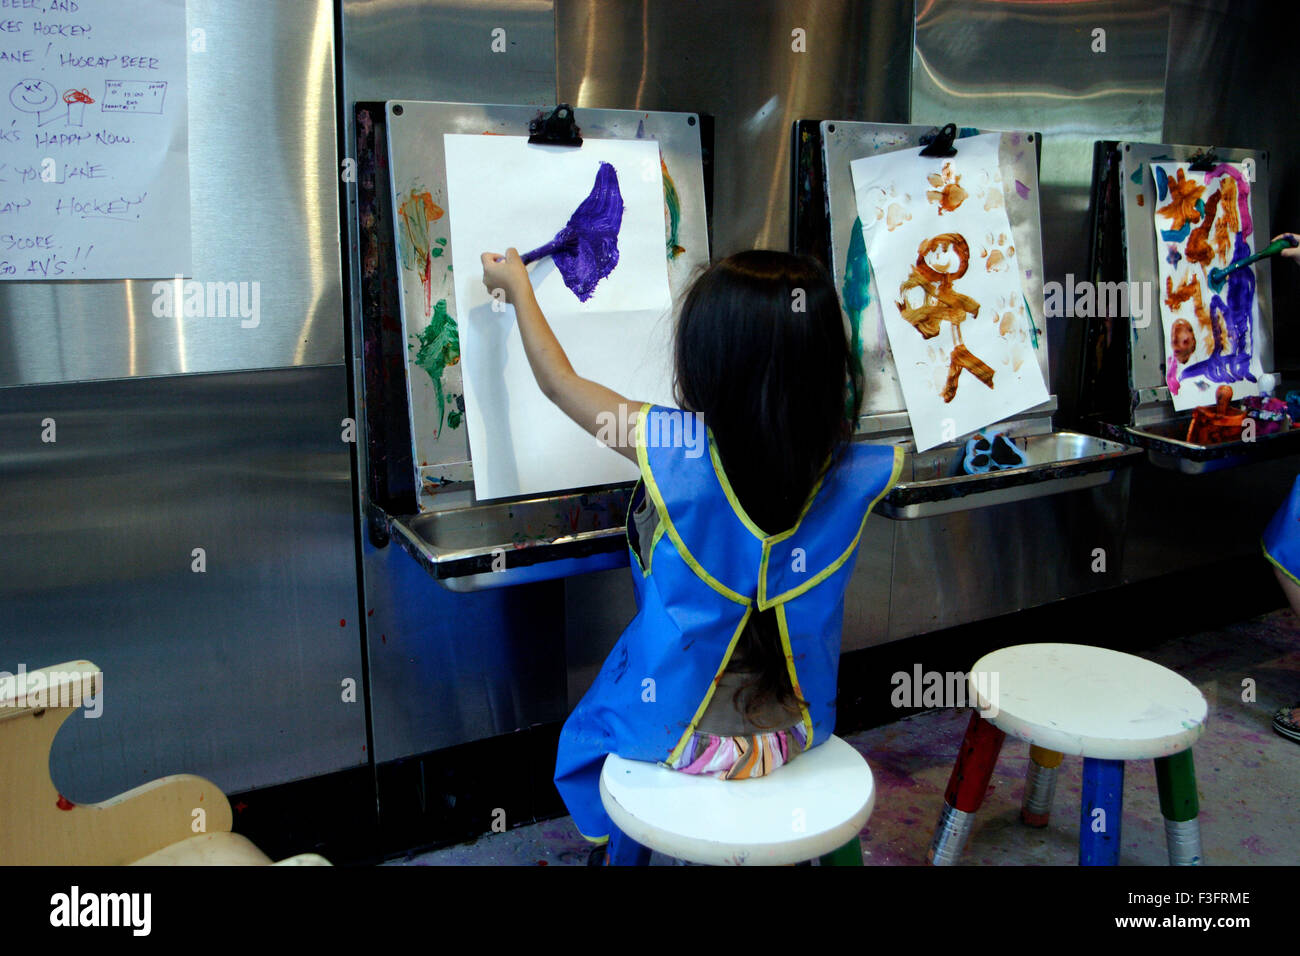 Girl wearing apron and took brush to paint continued for log time painting on paper in museum - Stock Image